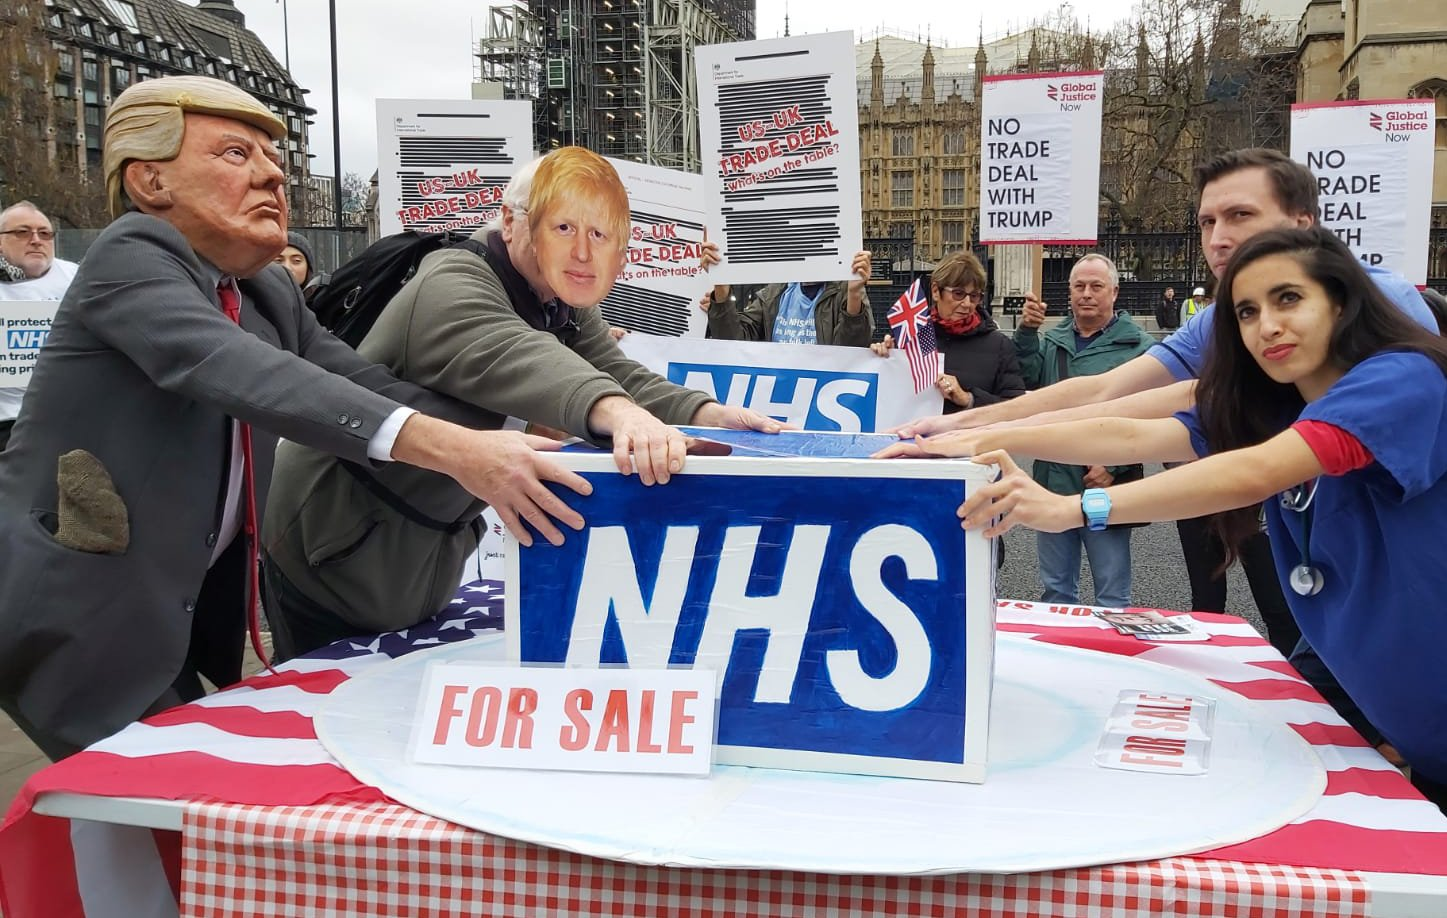 video:-british-healthcare-assistant-reveals-the-lies-on-covid-testing-and-the-lockdown.-we-say-no-the-army-and-the-police-–-global-research